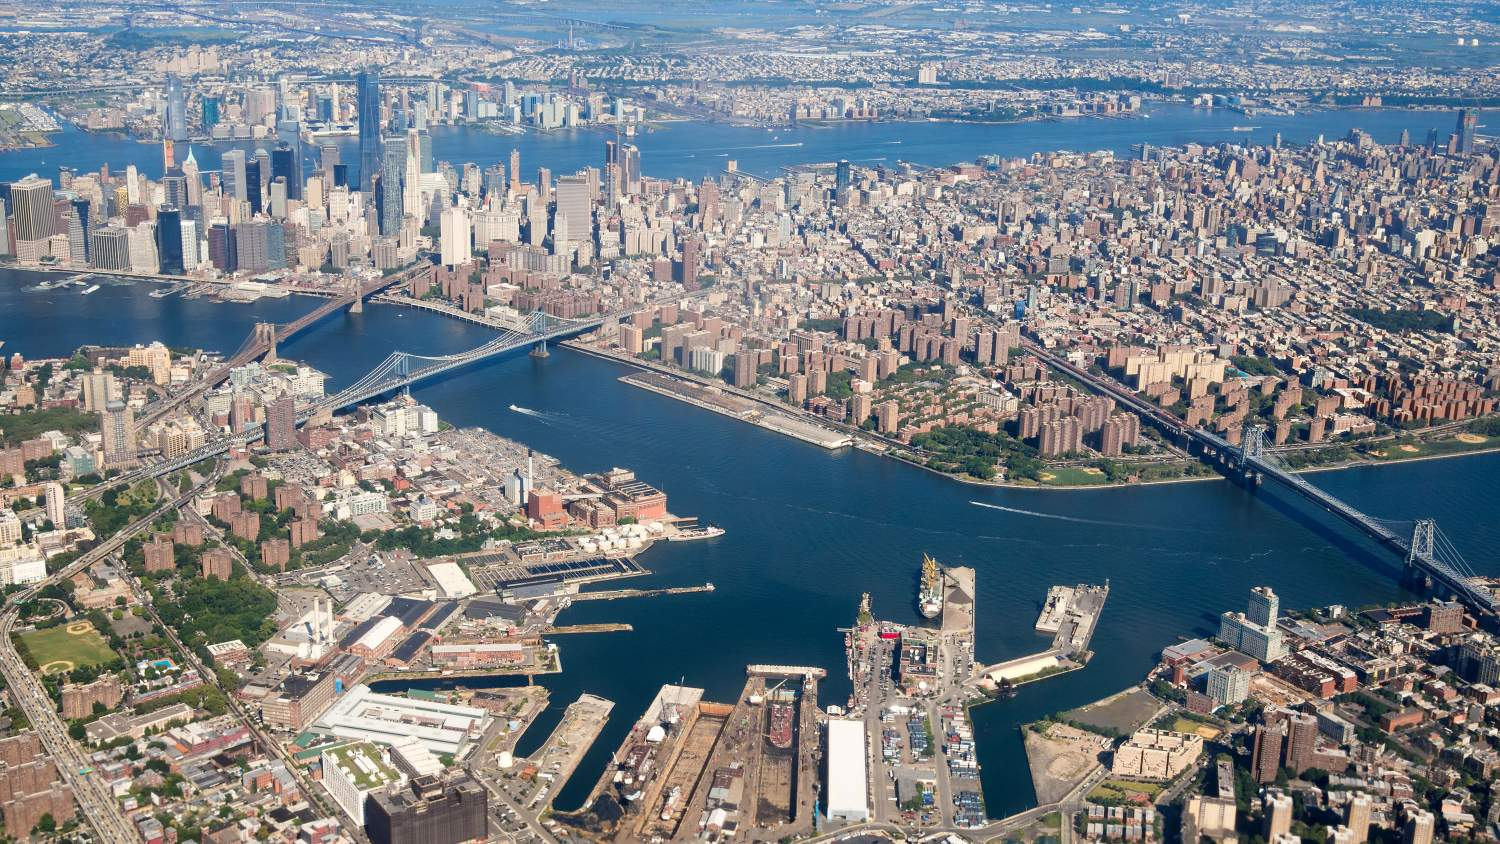 Aerial view of New York with rivers